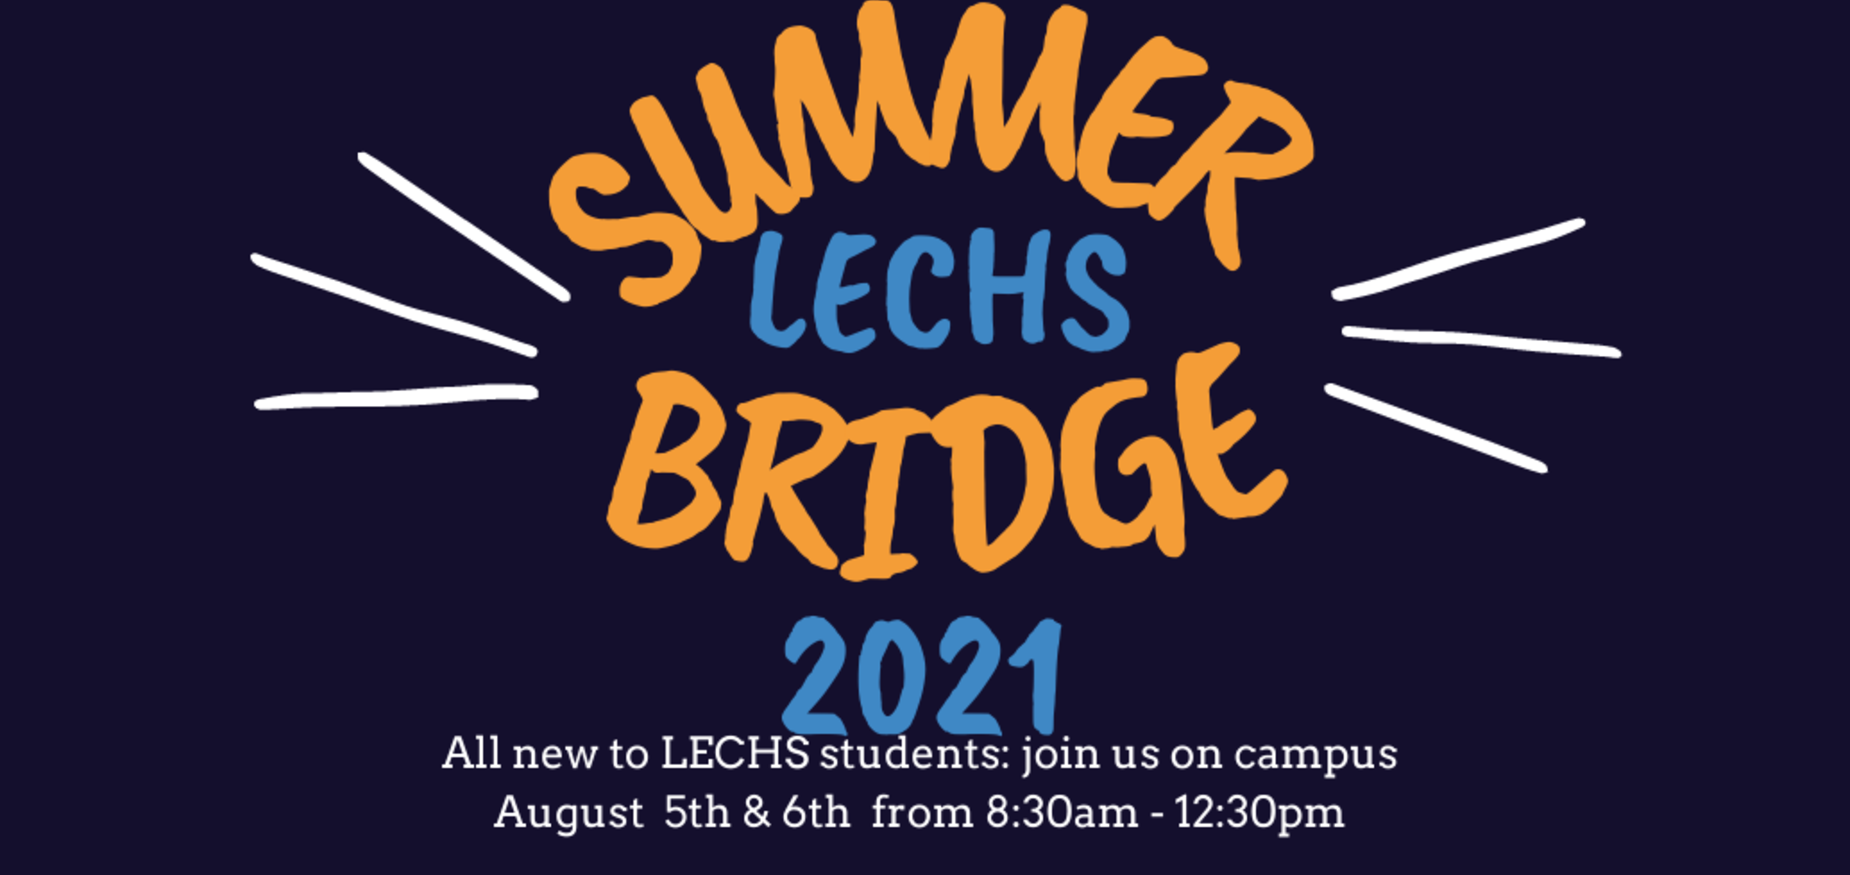 LECHS summer bridge program for all new students will be held from 8:30-12:30 August 5& 6 on campus